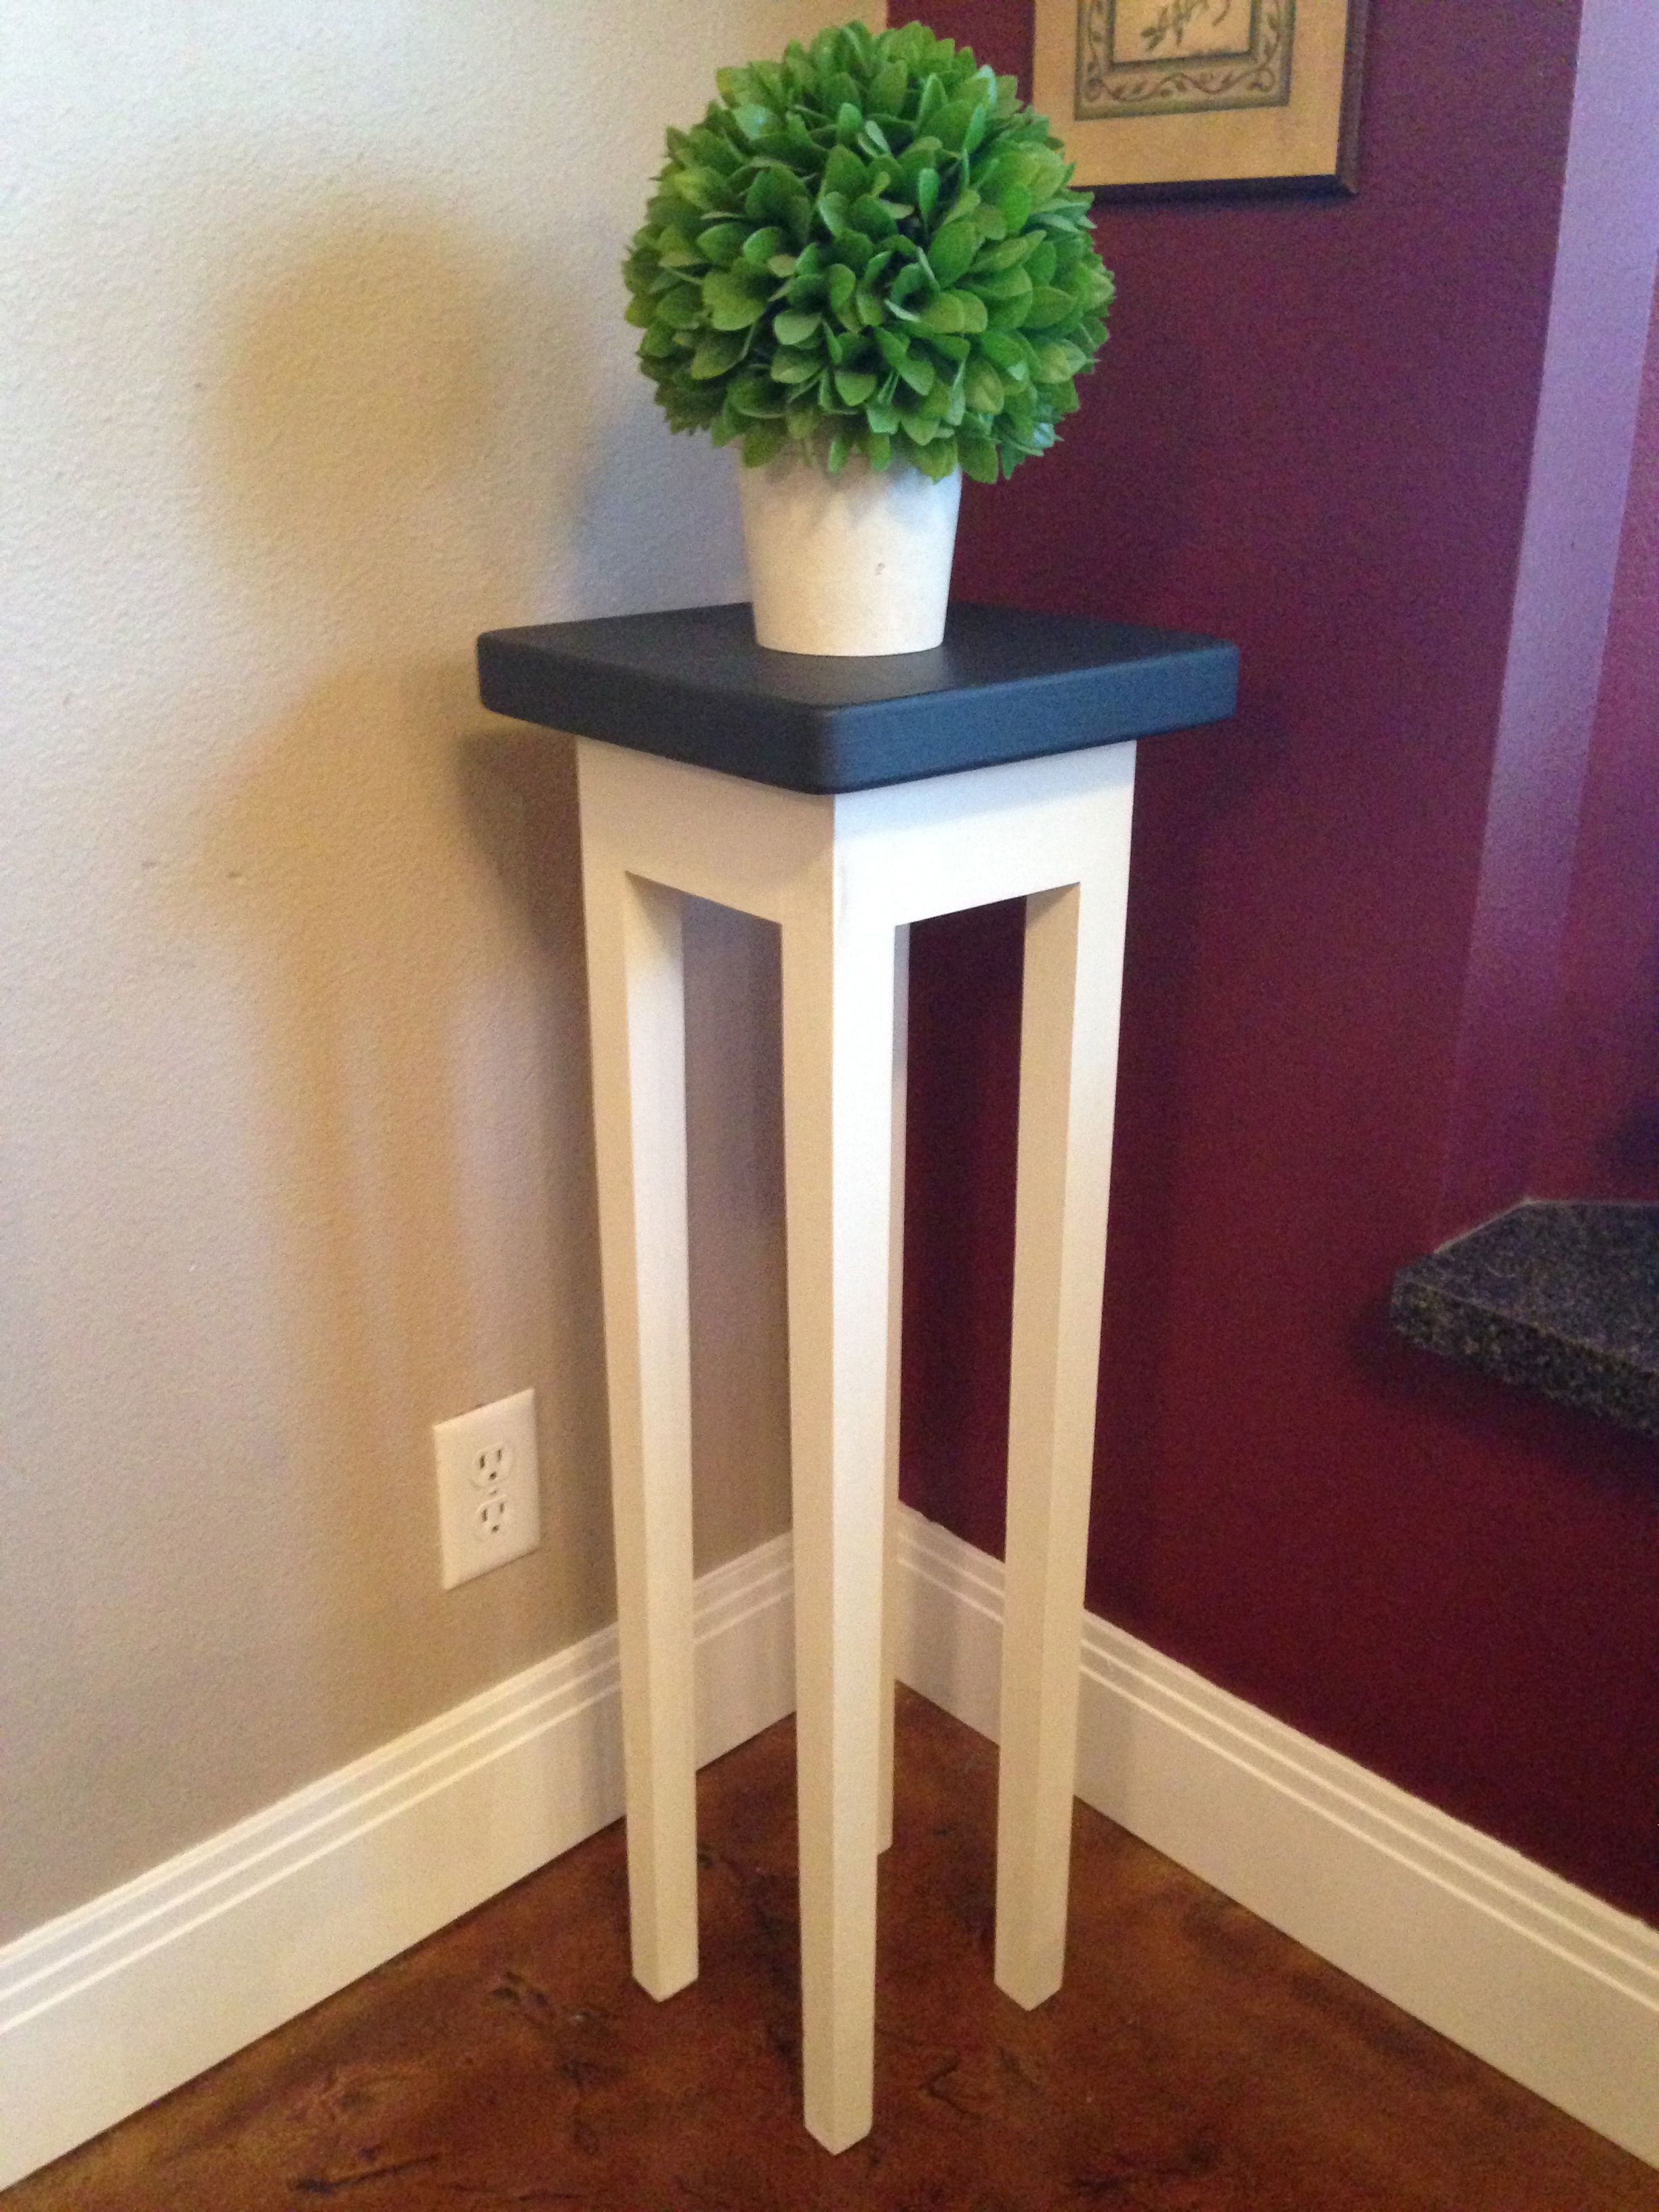 White Pedestal Plant Stands Tall White Plant Stand Interior Design Ideas